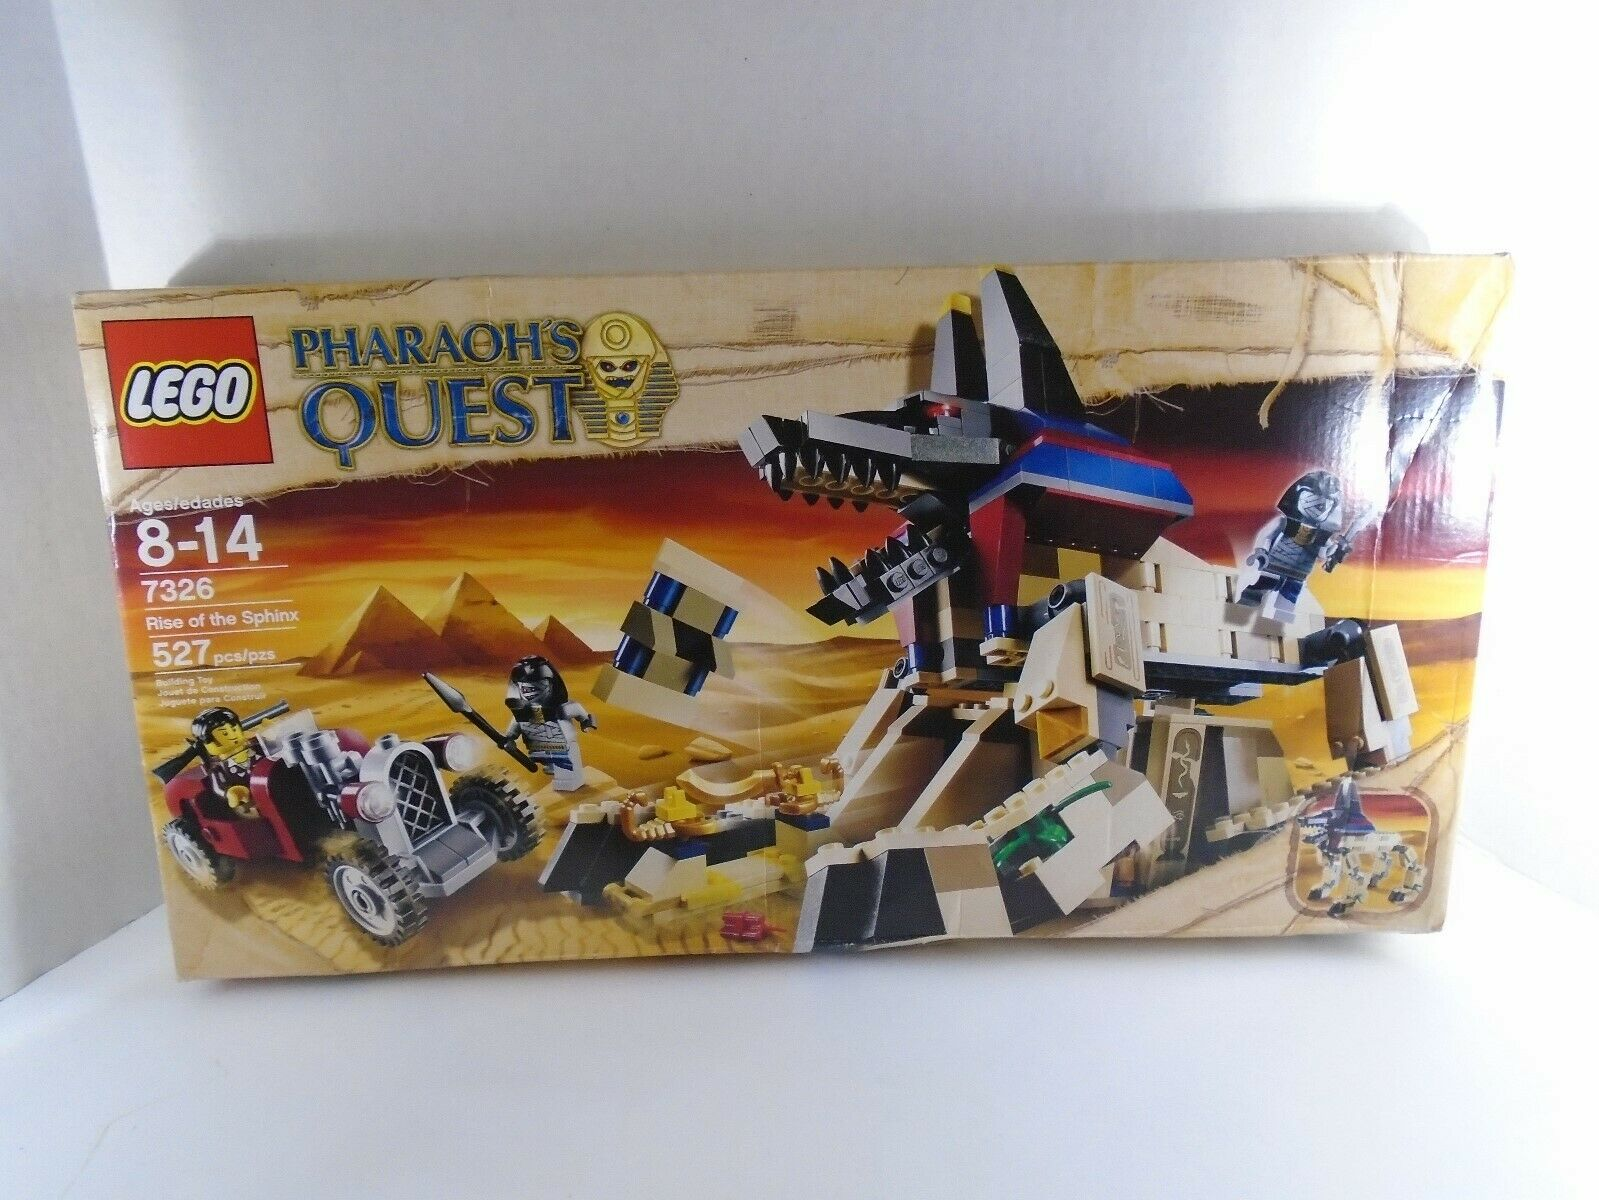 2011 LEGO  PHAROAH'S QUEST--RISE OF THE SPHINX SET (nuovo) 7326  per poco costoso